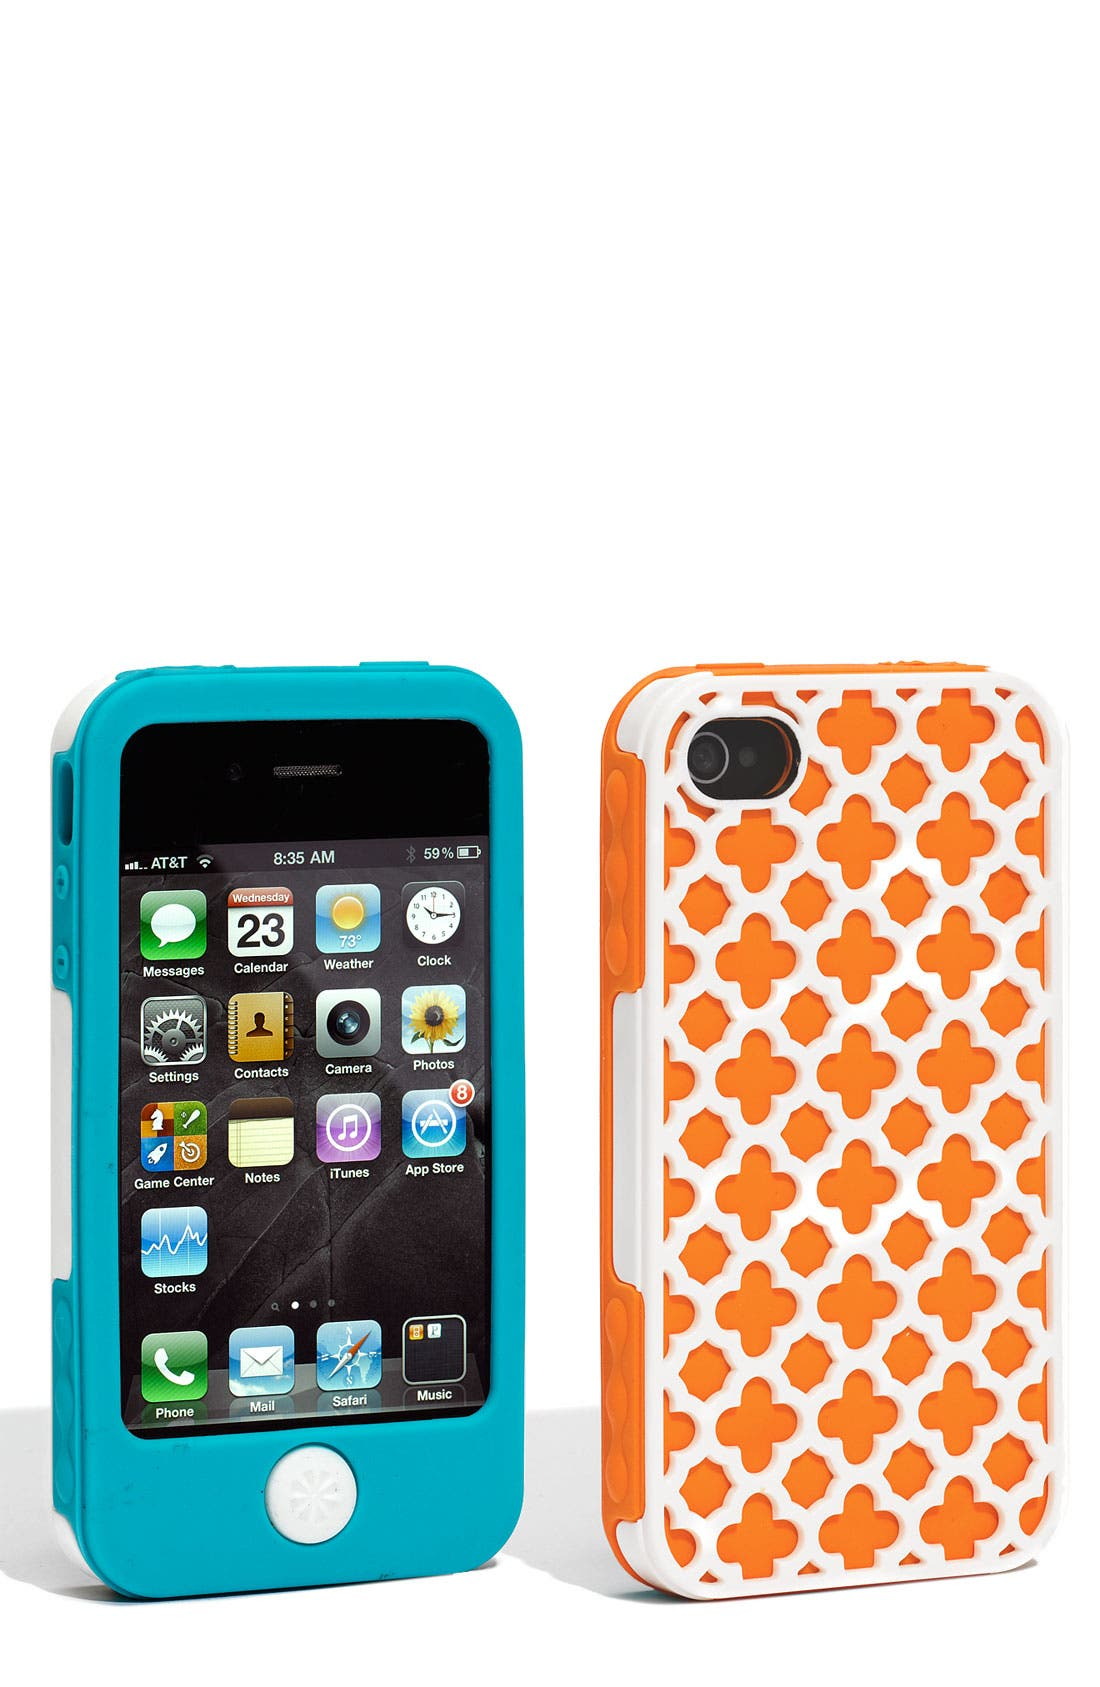 Main Image - Tech Candy 'Barcelona' iPhone 4 Silicone Case (3-Piece Set)